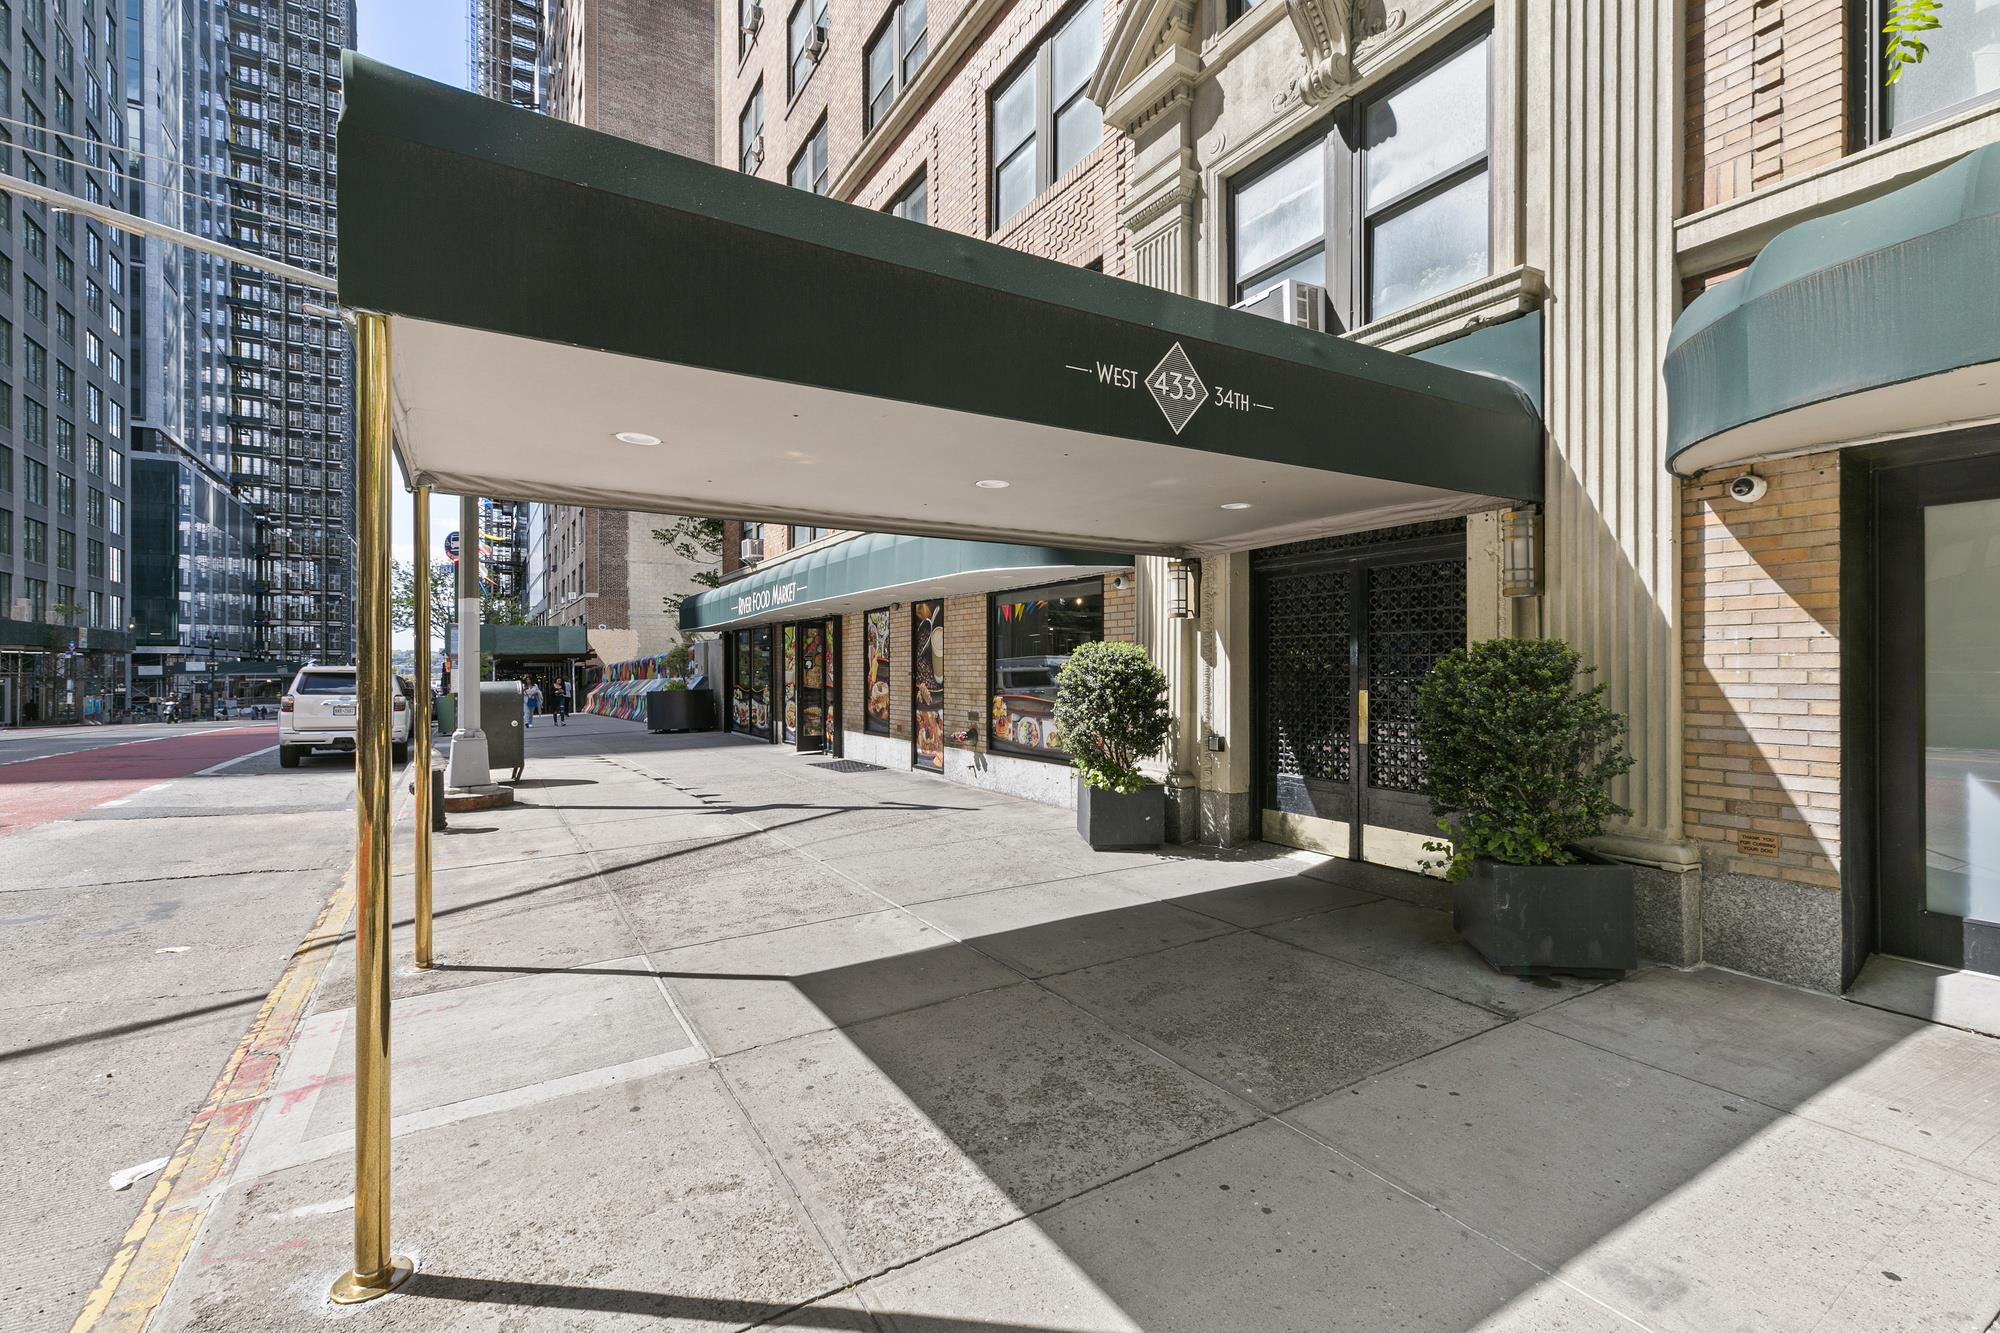 primary photo for 433 West 34th Street 3-M, New York, NY 10001, US